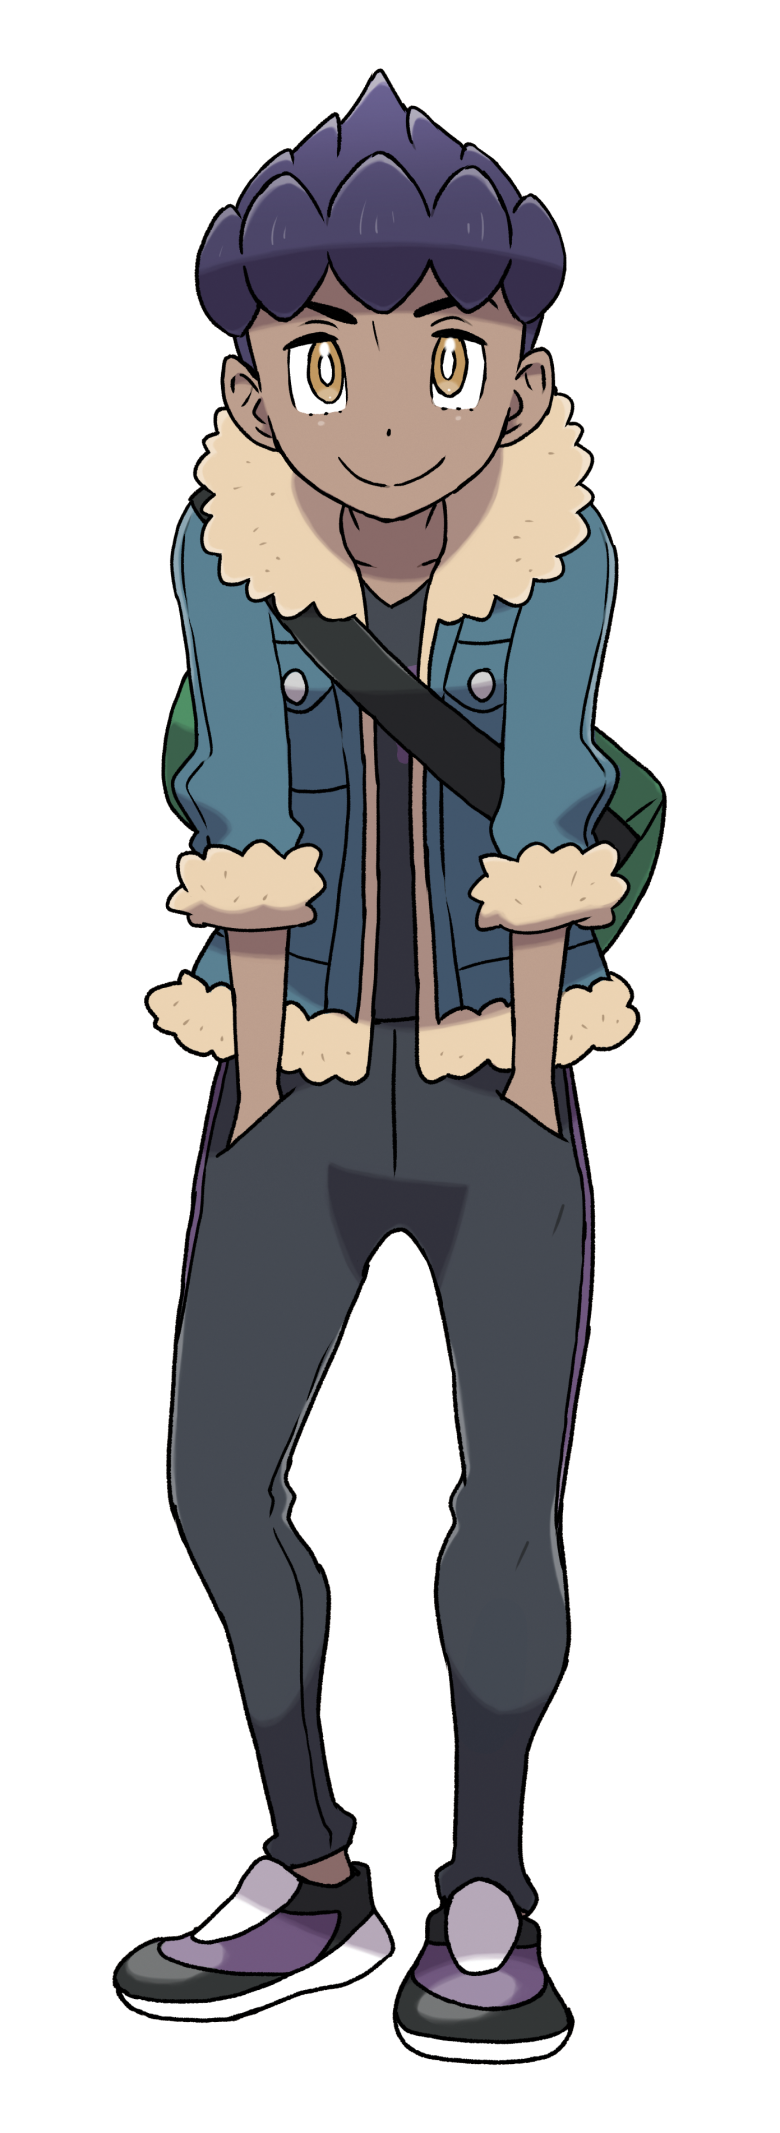 Pokemon-Sword-and-Shield_2019_06-05-19_066.png